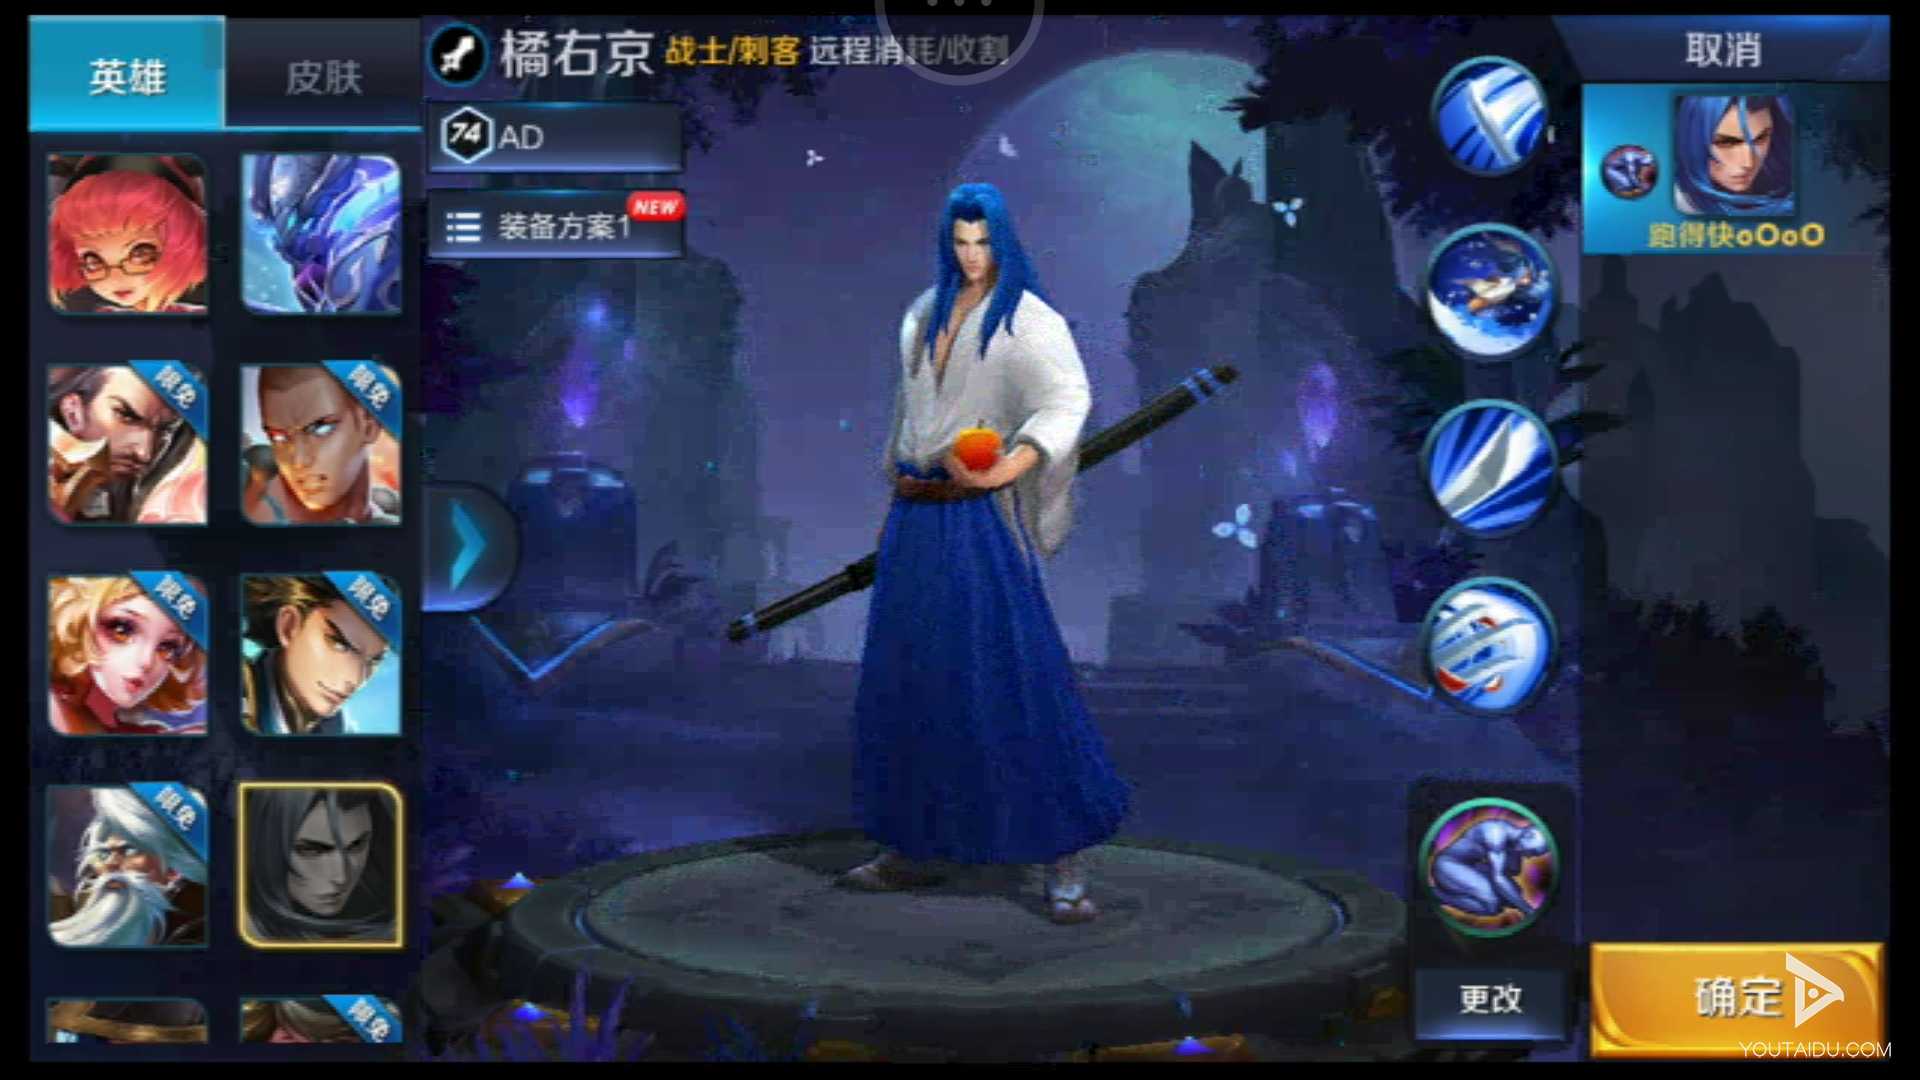 Screenshot_2016-11-18-14-55-09_com.tencent.gamestation.control.png